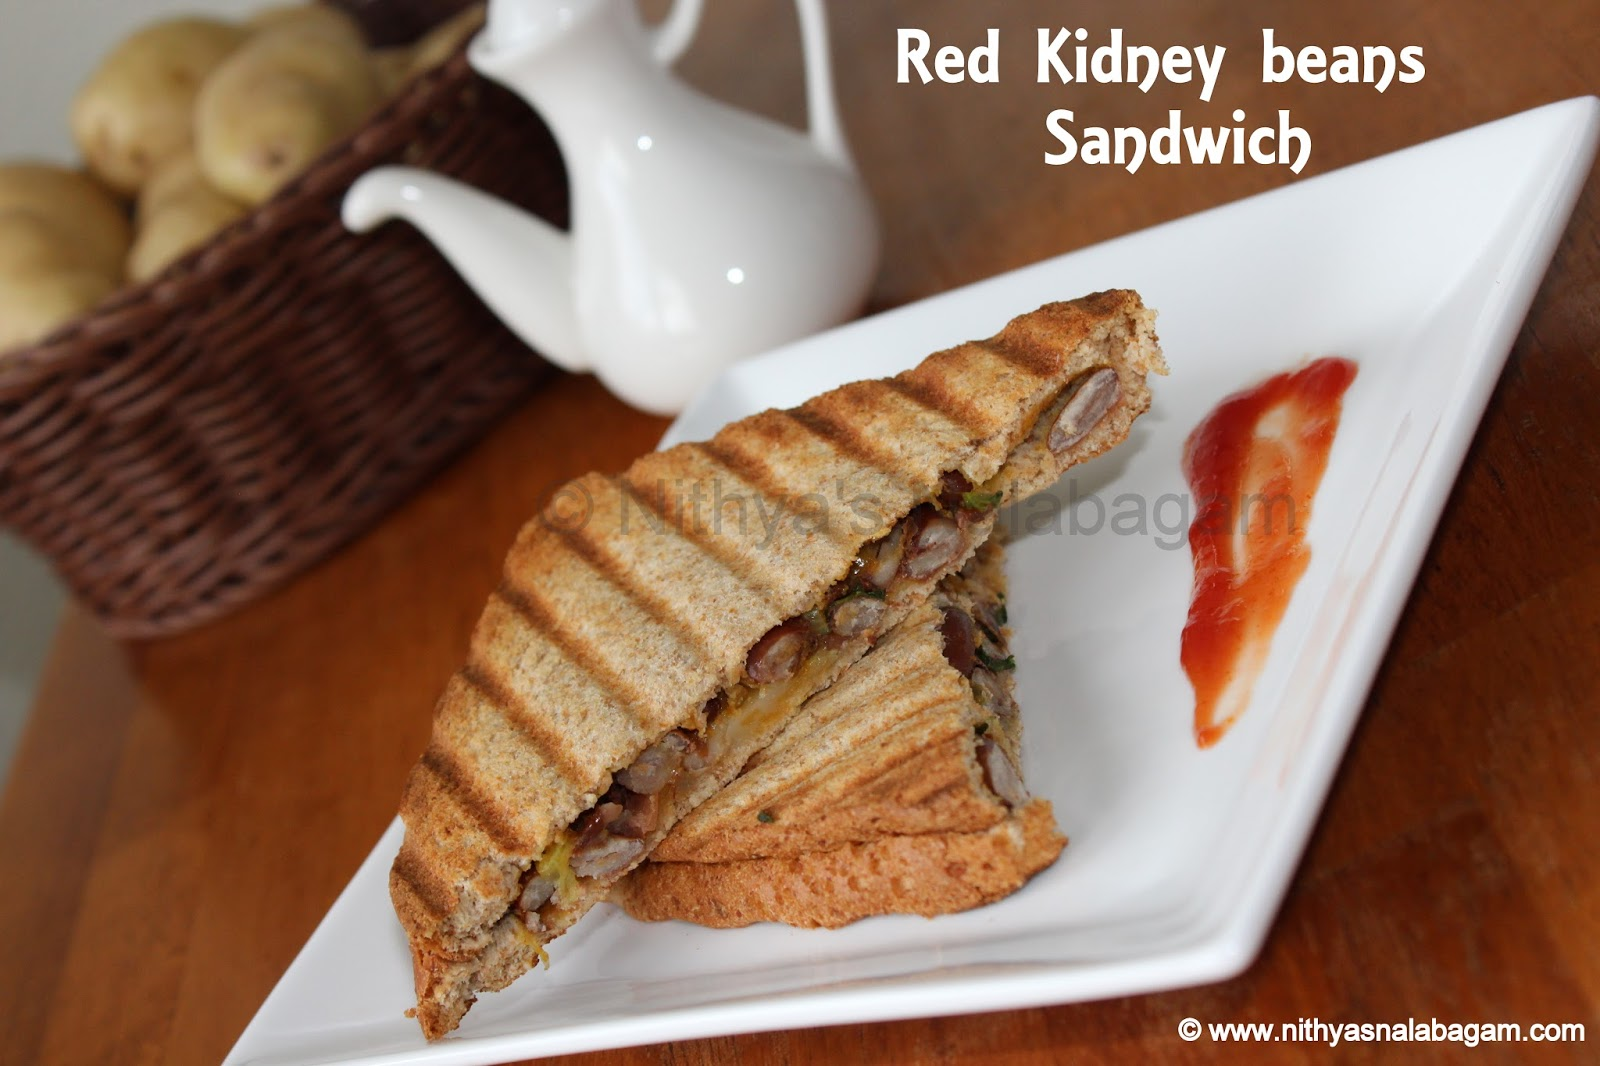 Red Kidney beans Sandwich